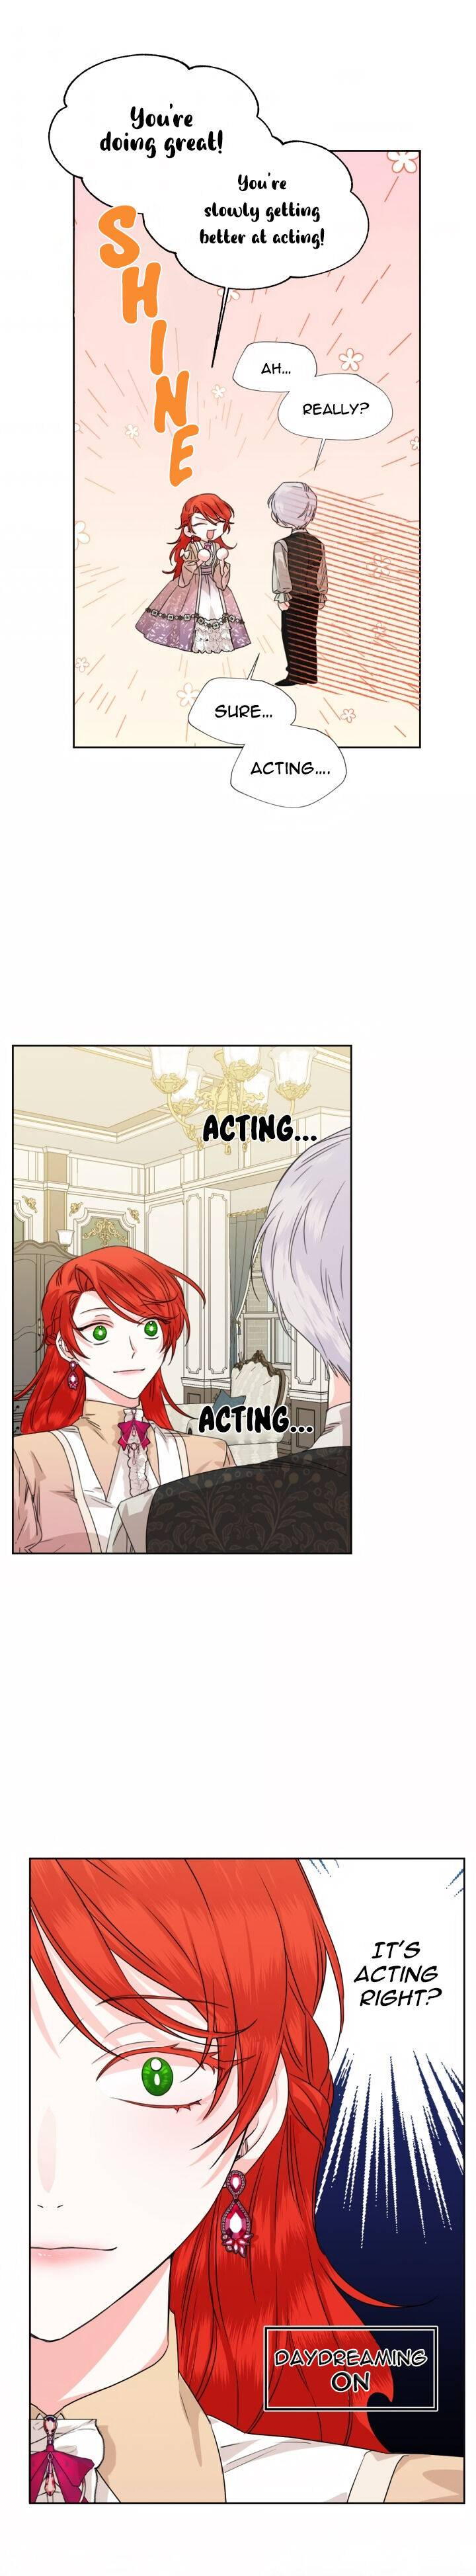 Happy Ending For The Time-Limited Villainess - chapter 46 - #3